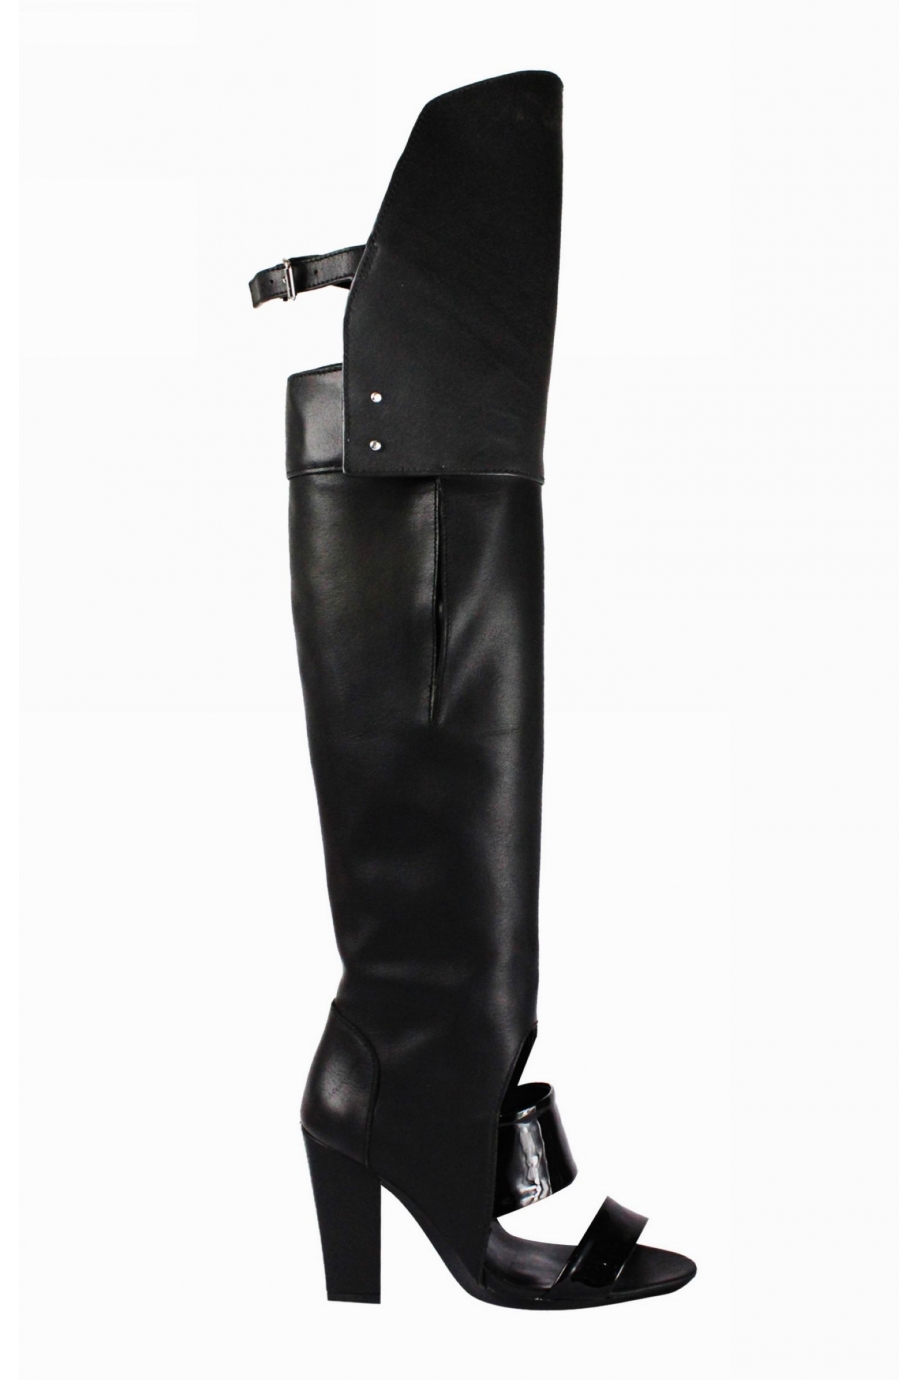 Open Toe Over The Knee Boots yczm5cjq